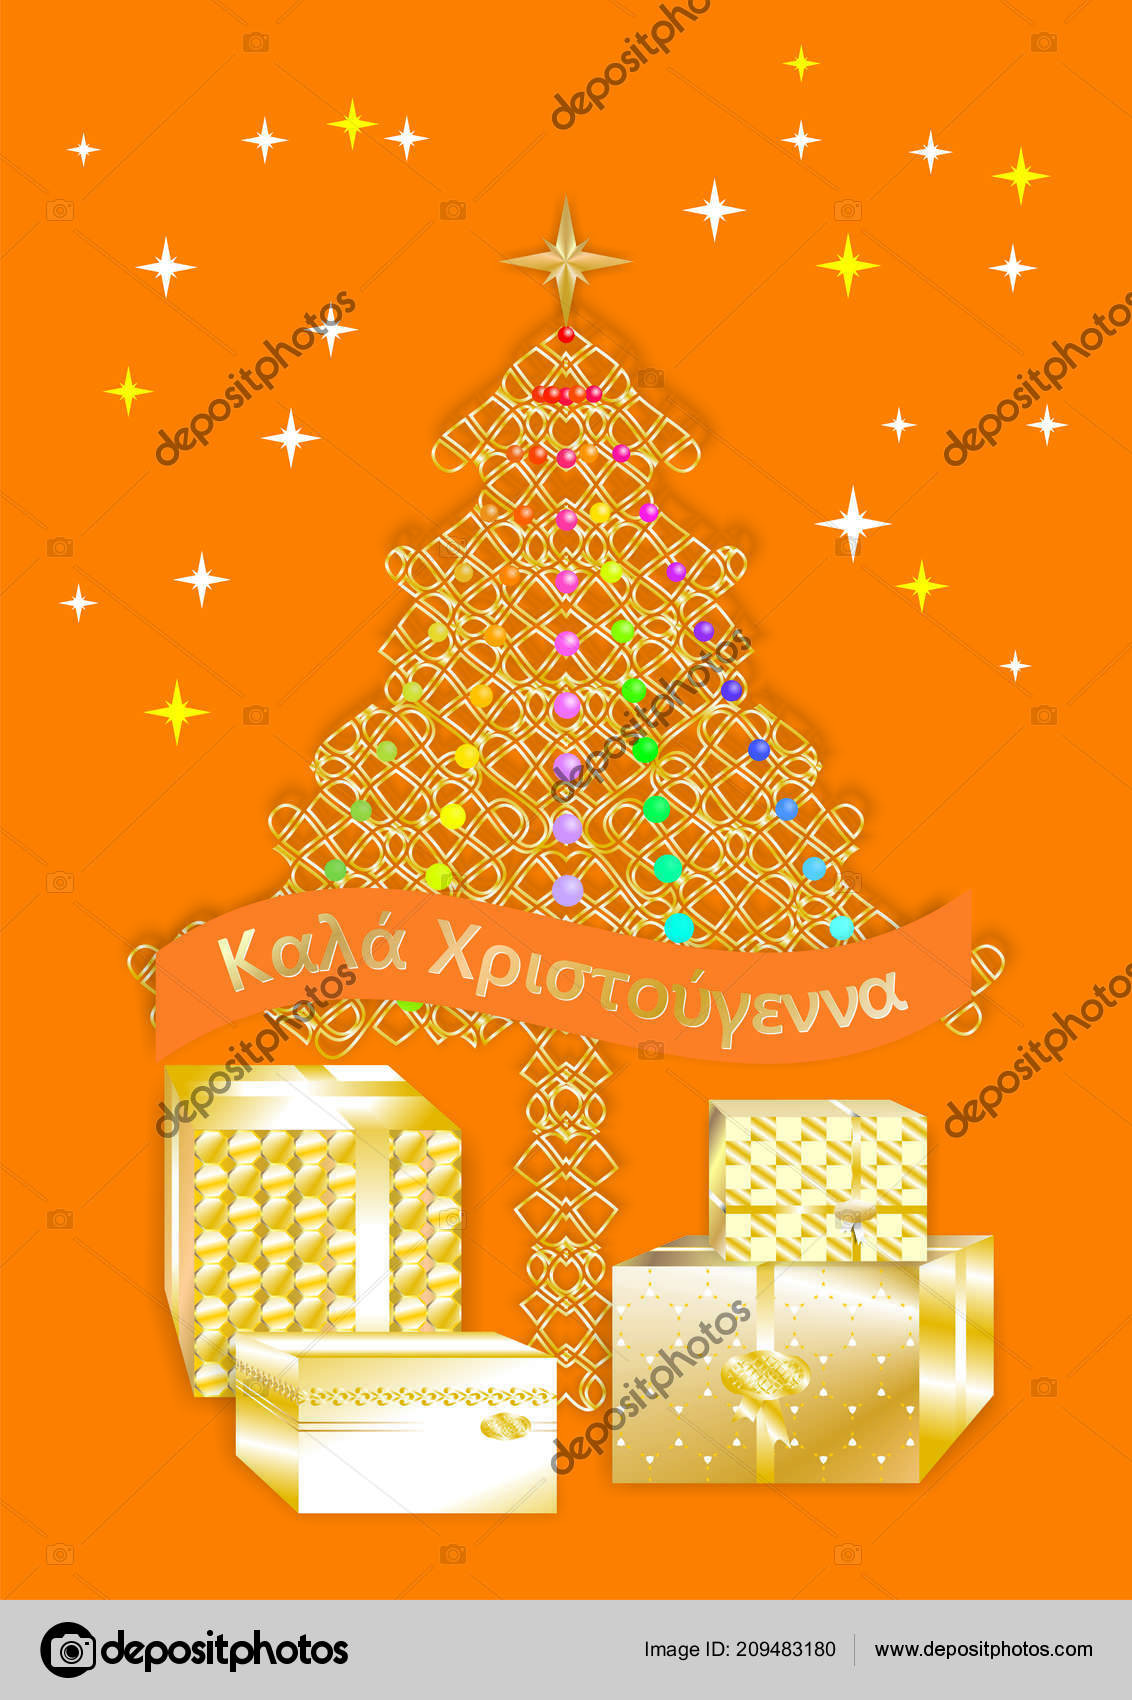 Pretty Colorful Christmas Greeting Card Written Several Languages